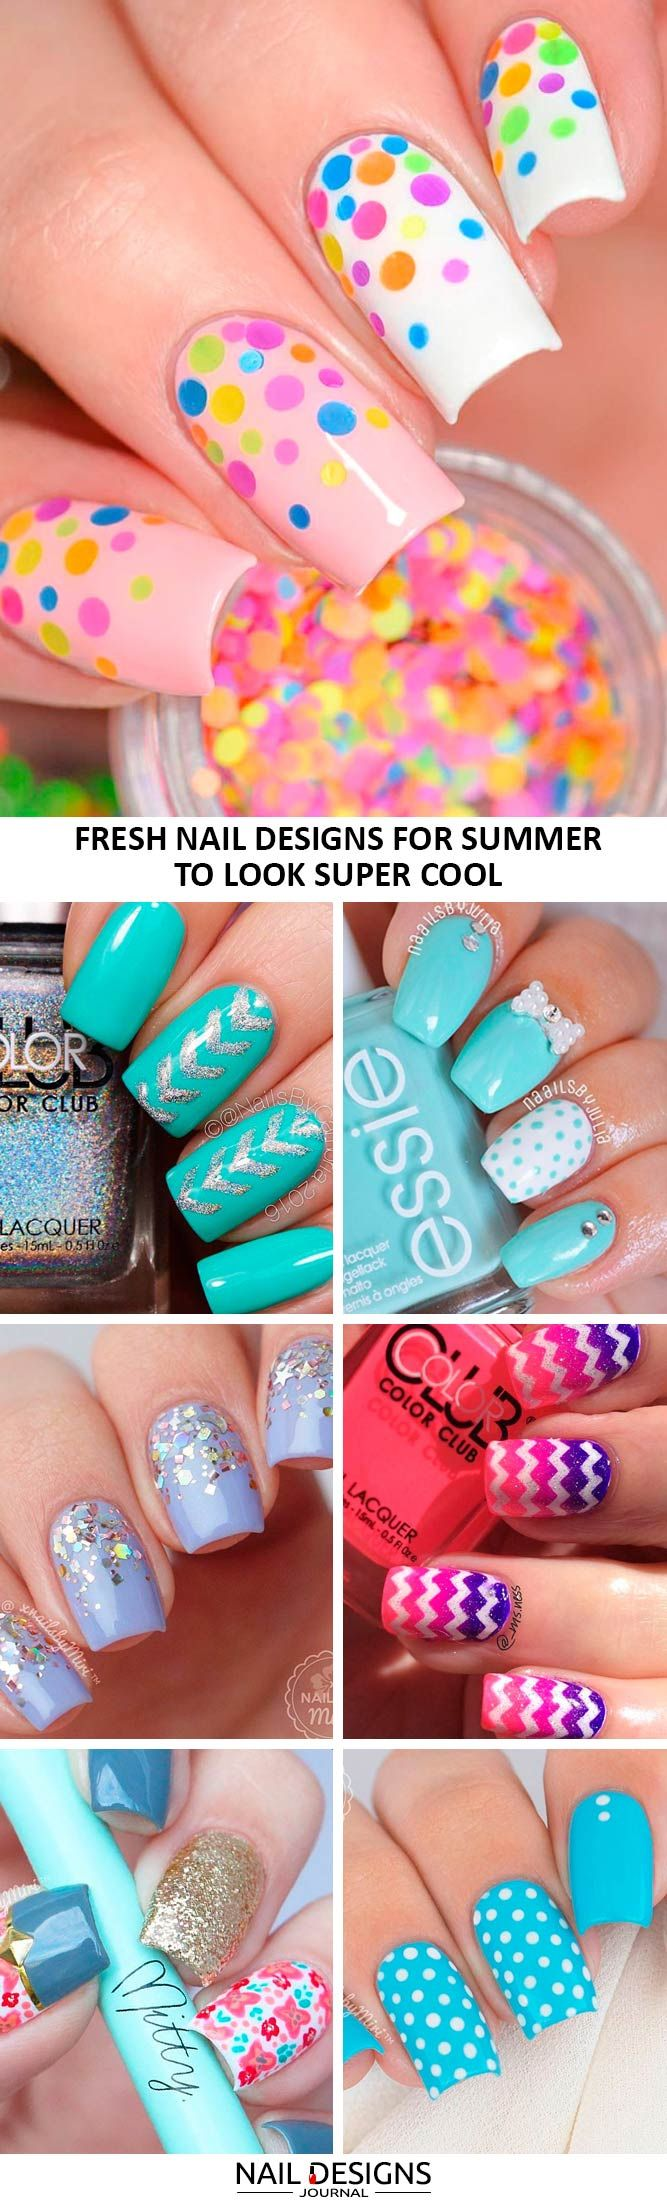 See the trendiest nail designs for summer 2017!